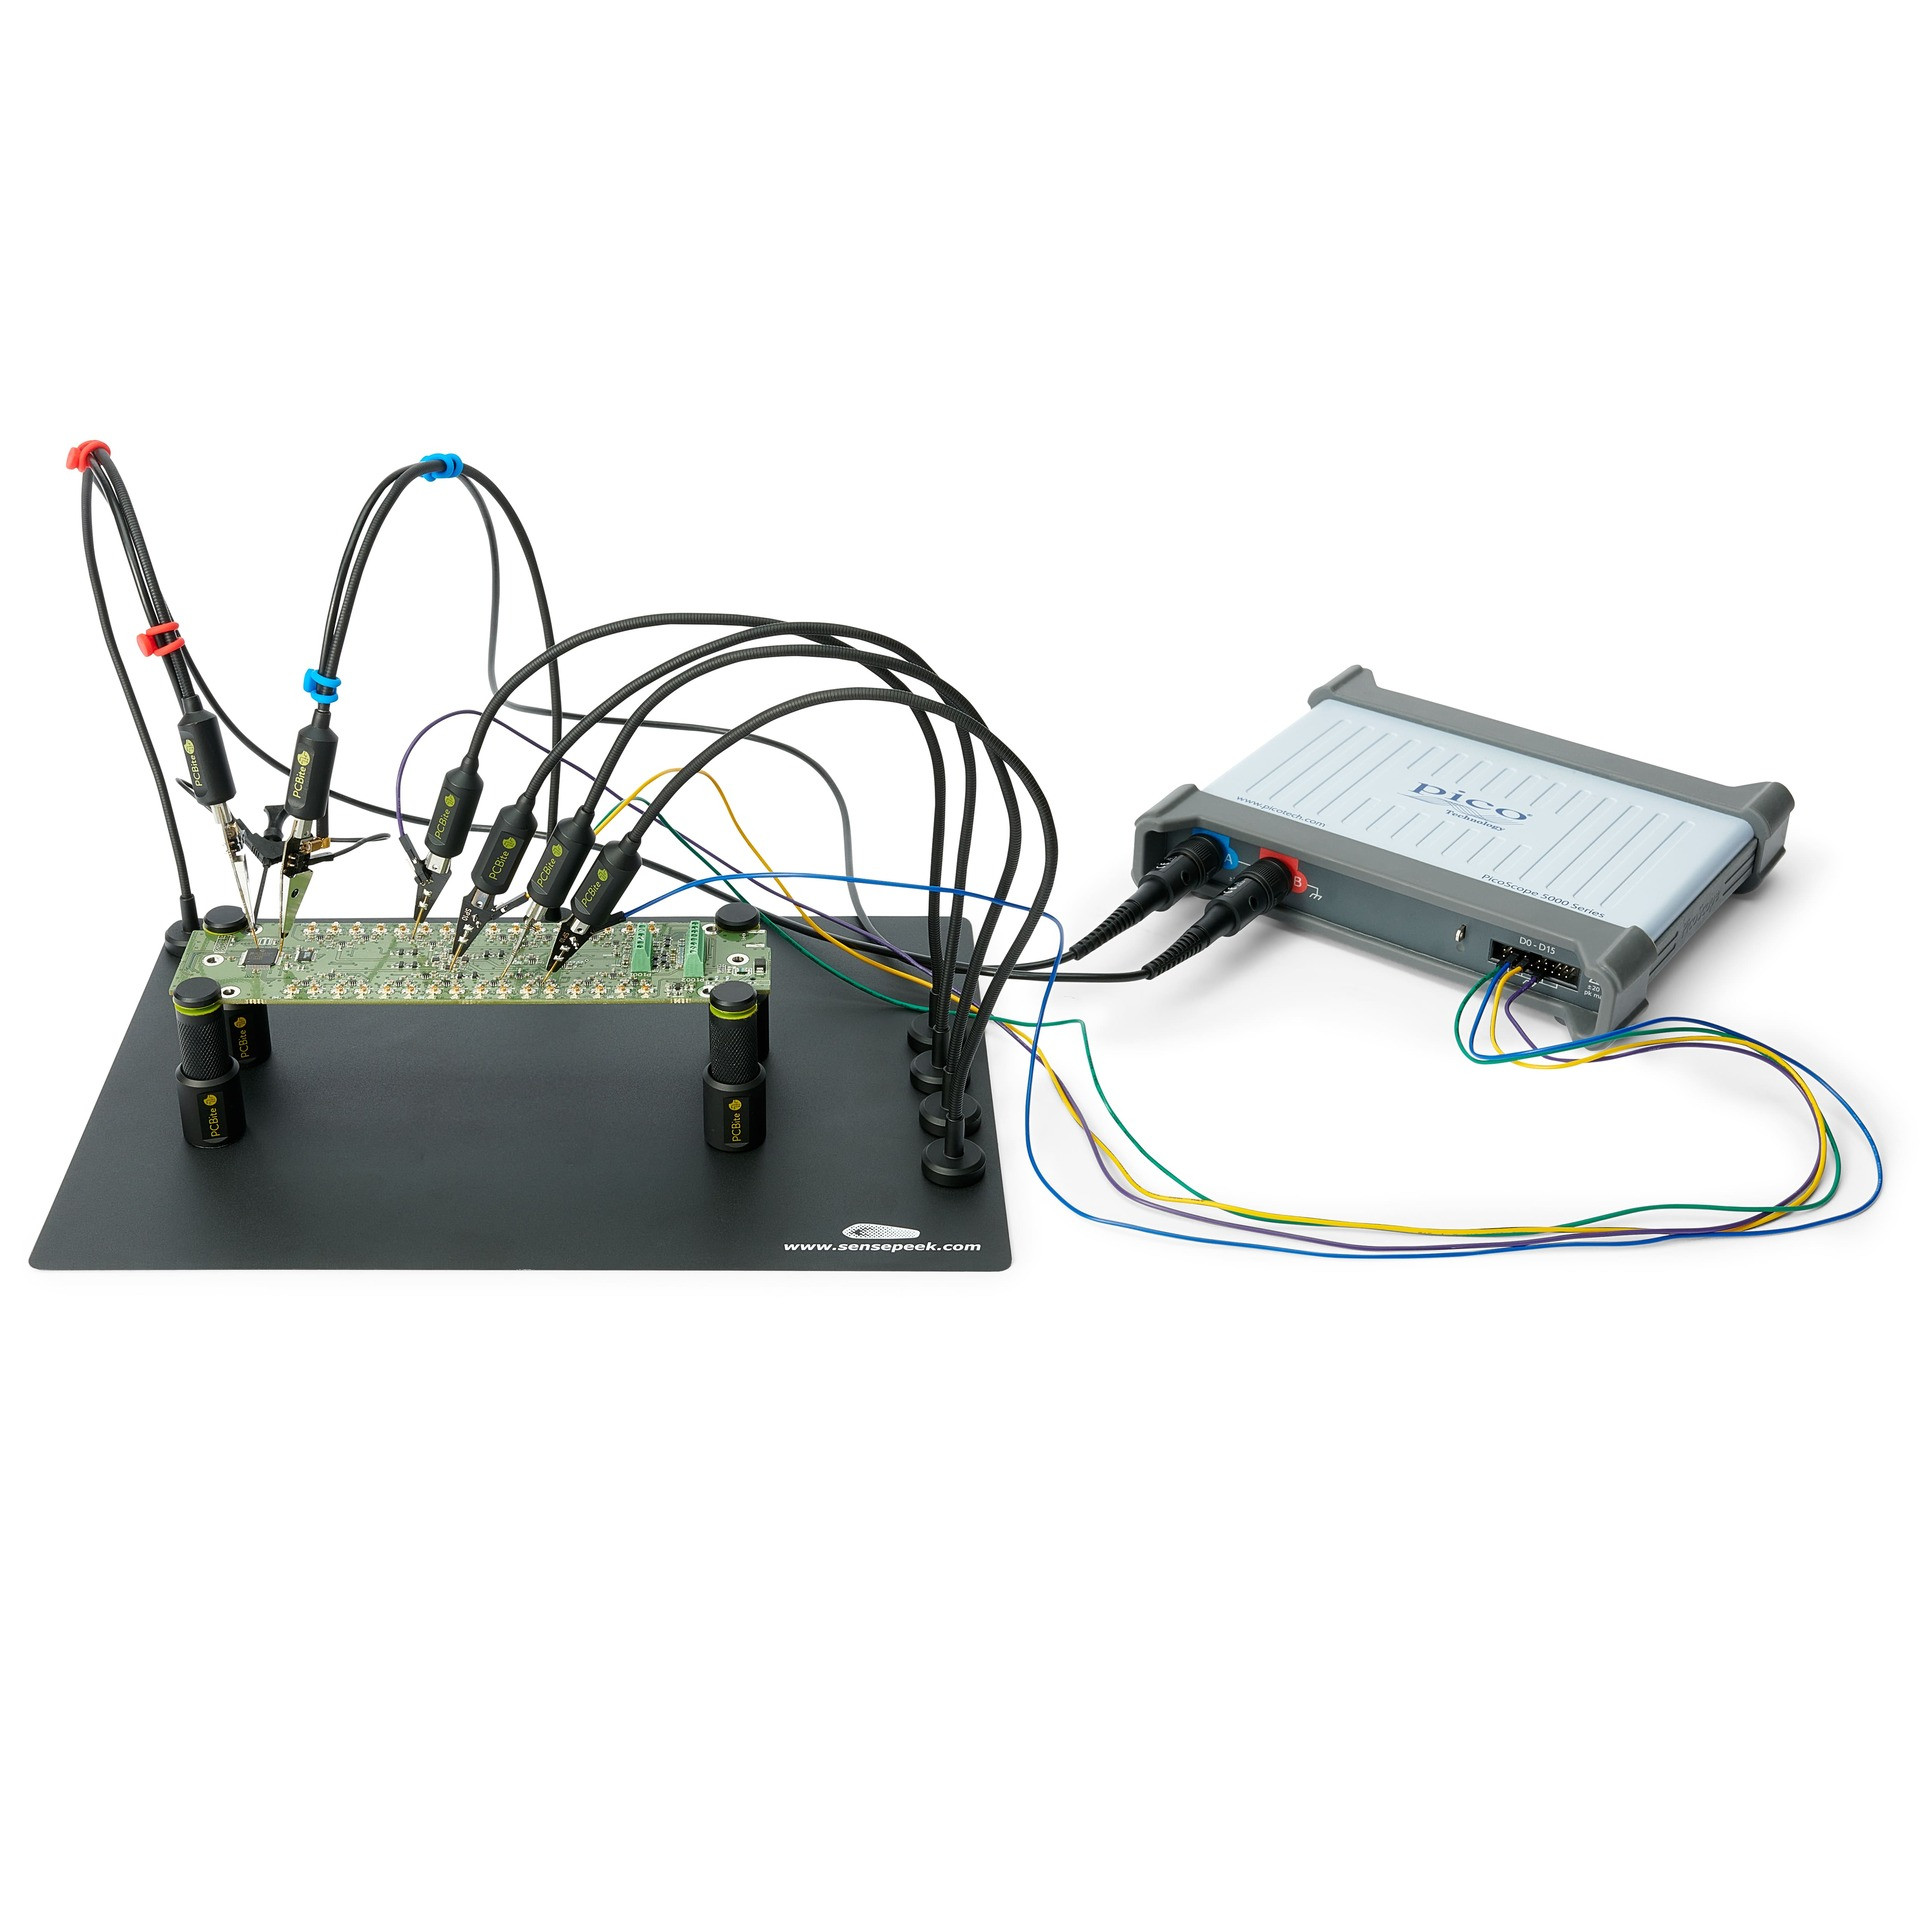 PCBite kit with 2x 200MHz and 4x SP10 handsfree probes details